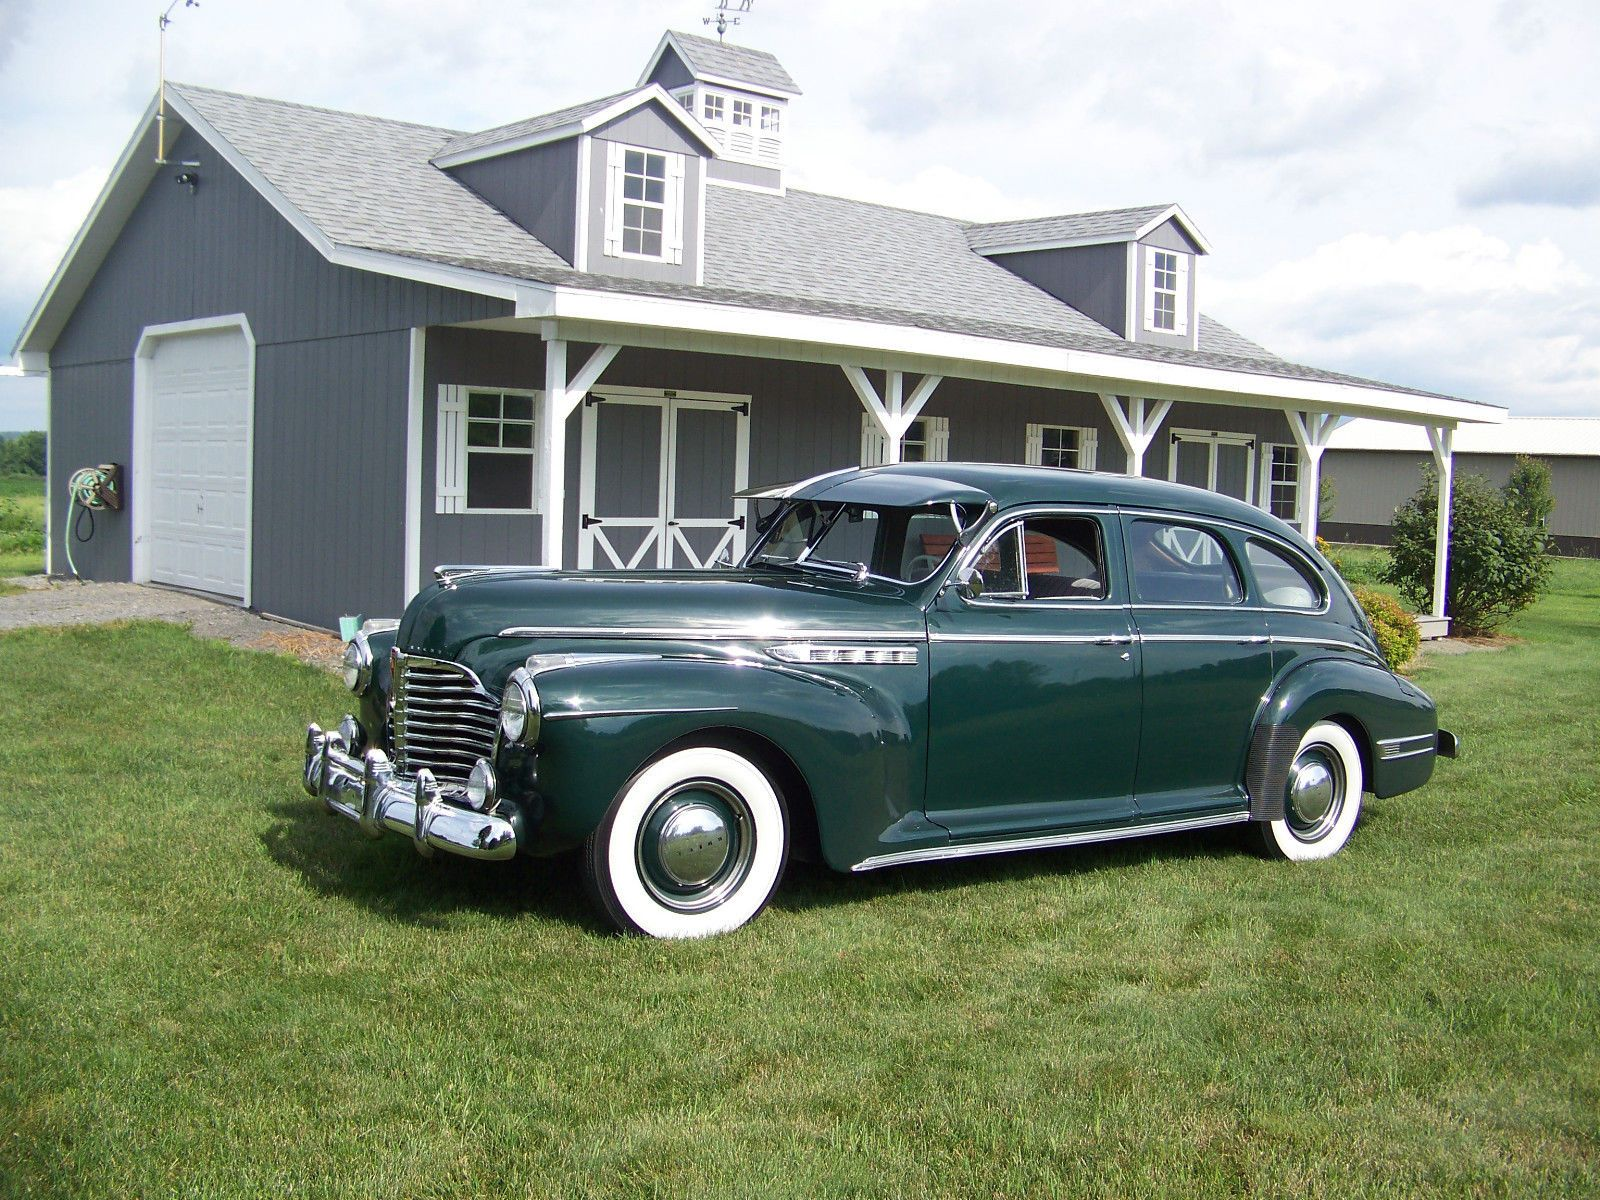 1941 buick for sale used cars on buysellsearch